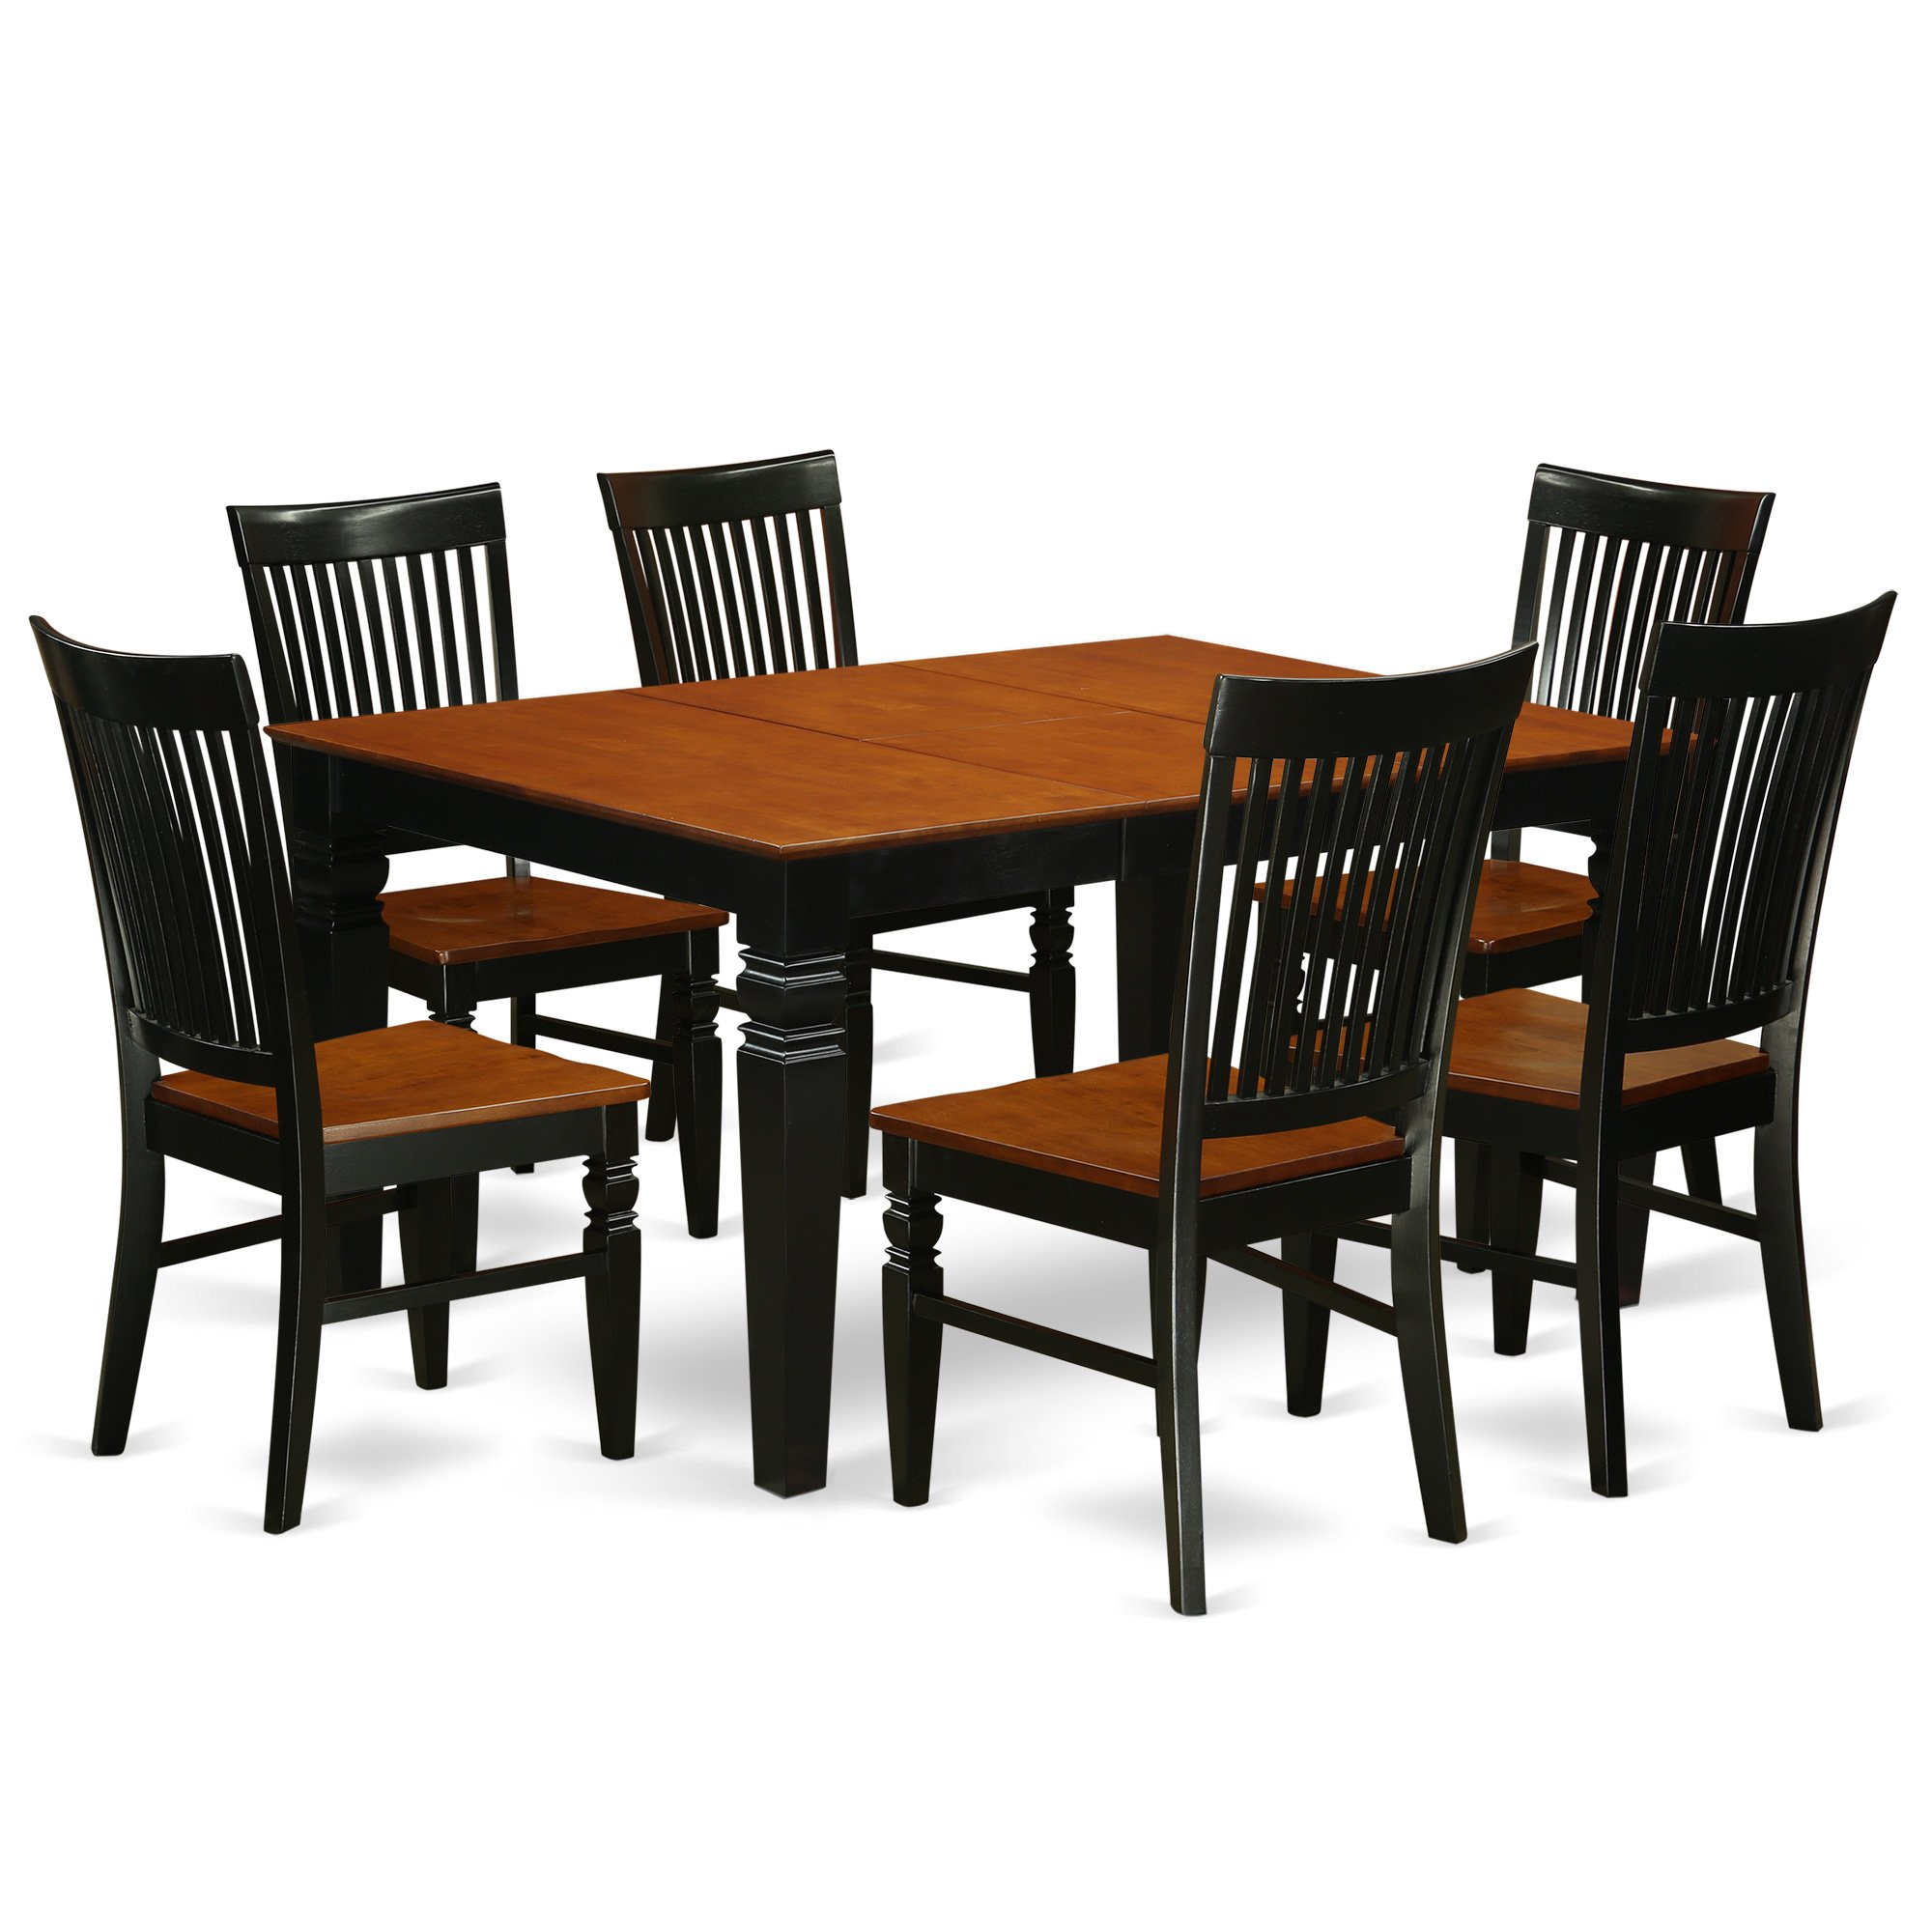 East West Furniture WEST7-BCH-W Weston, 7 Piece, Black And Cherry